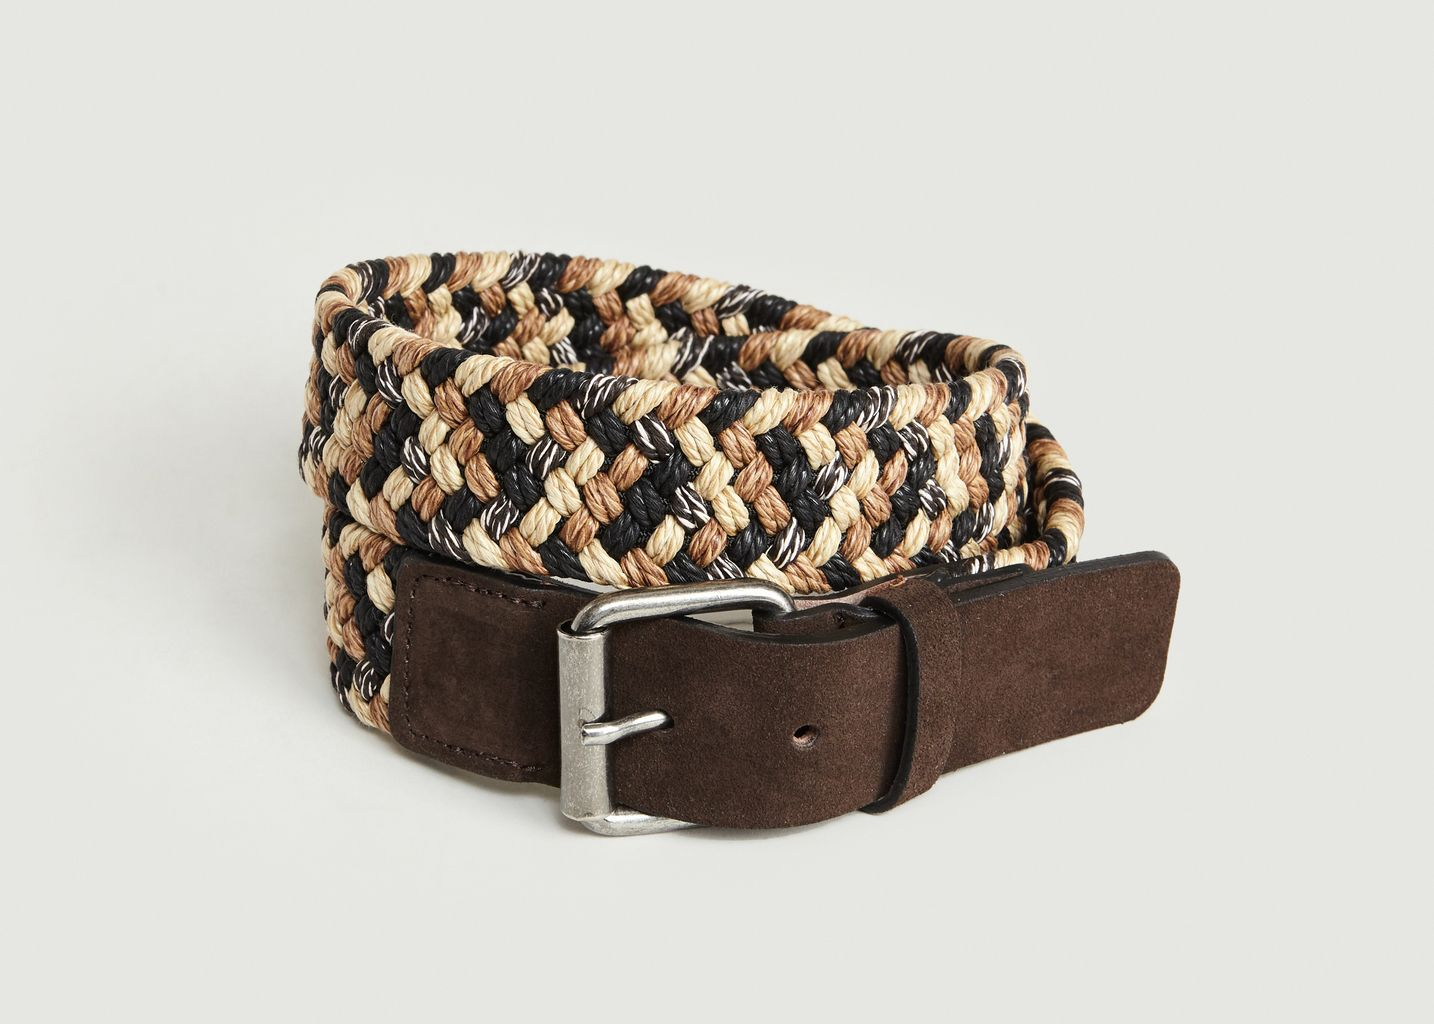 6ffa0c23258619 Soldes Ceinture Raphael Marron Paul   Joe à -50%   L Exception